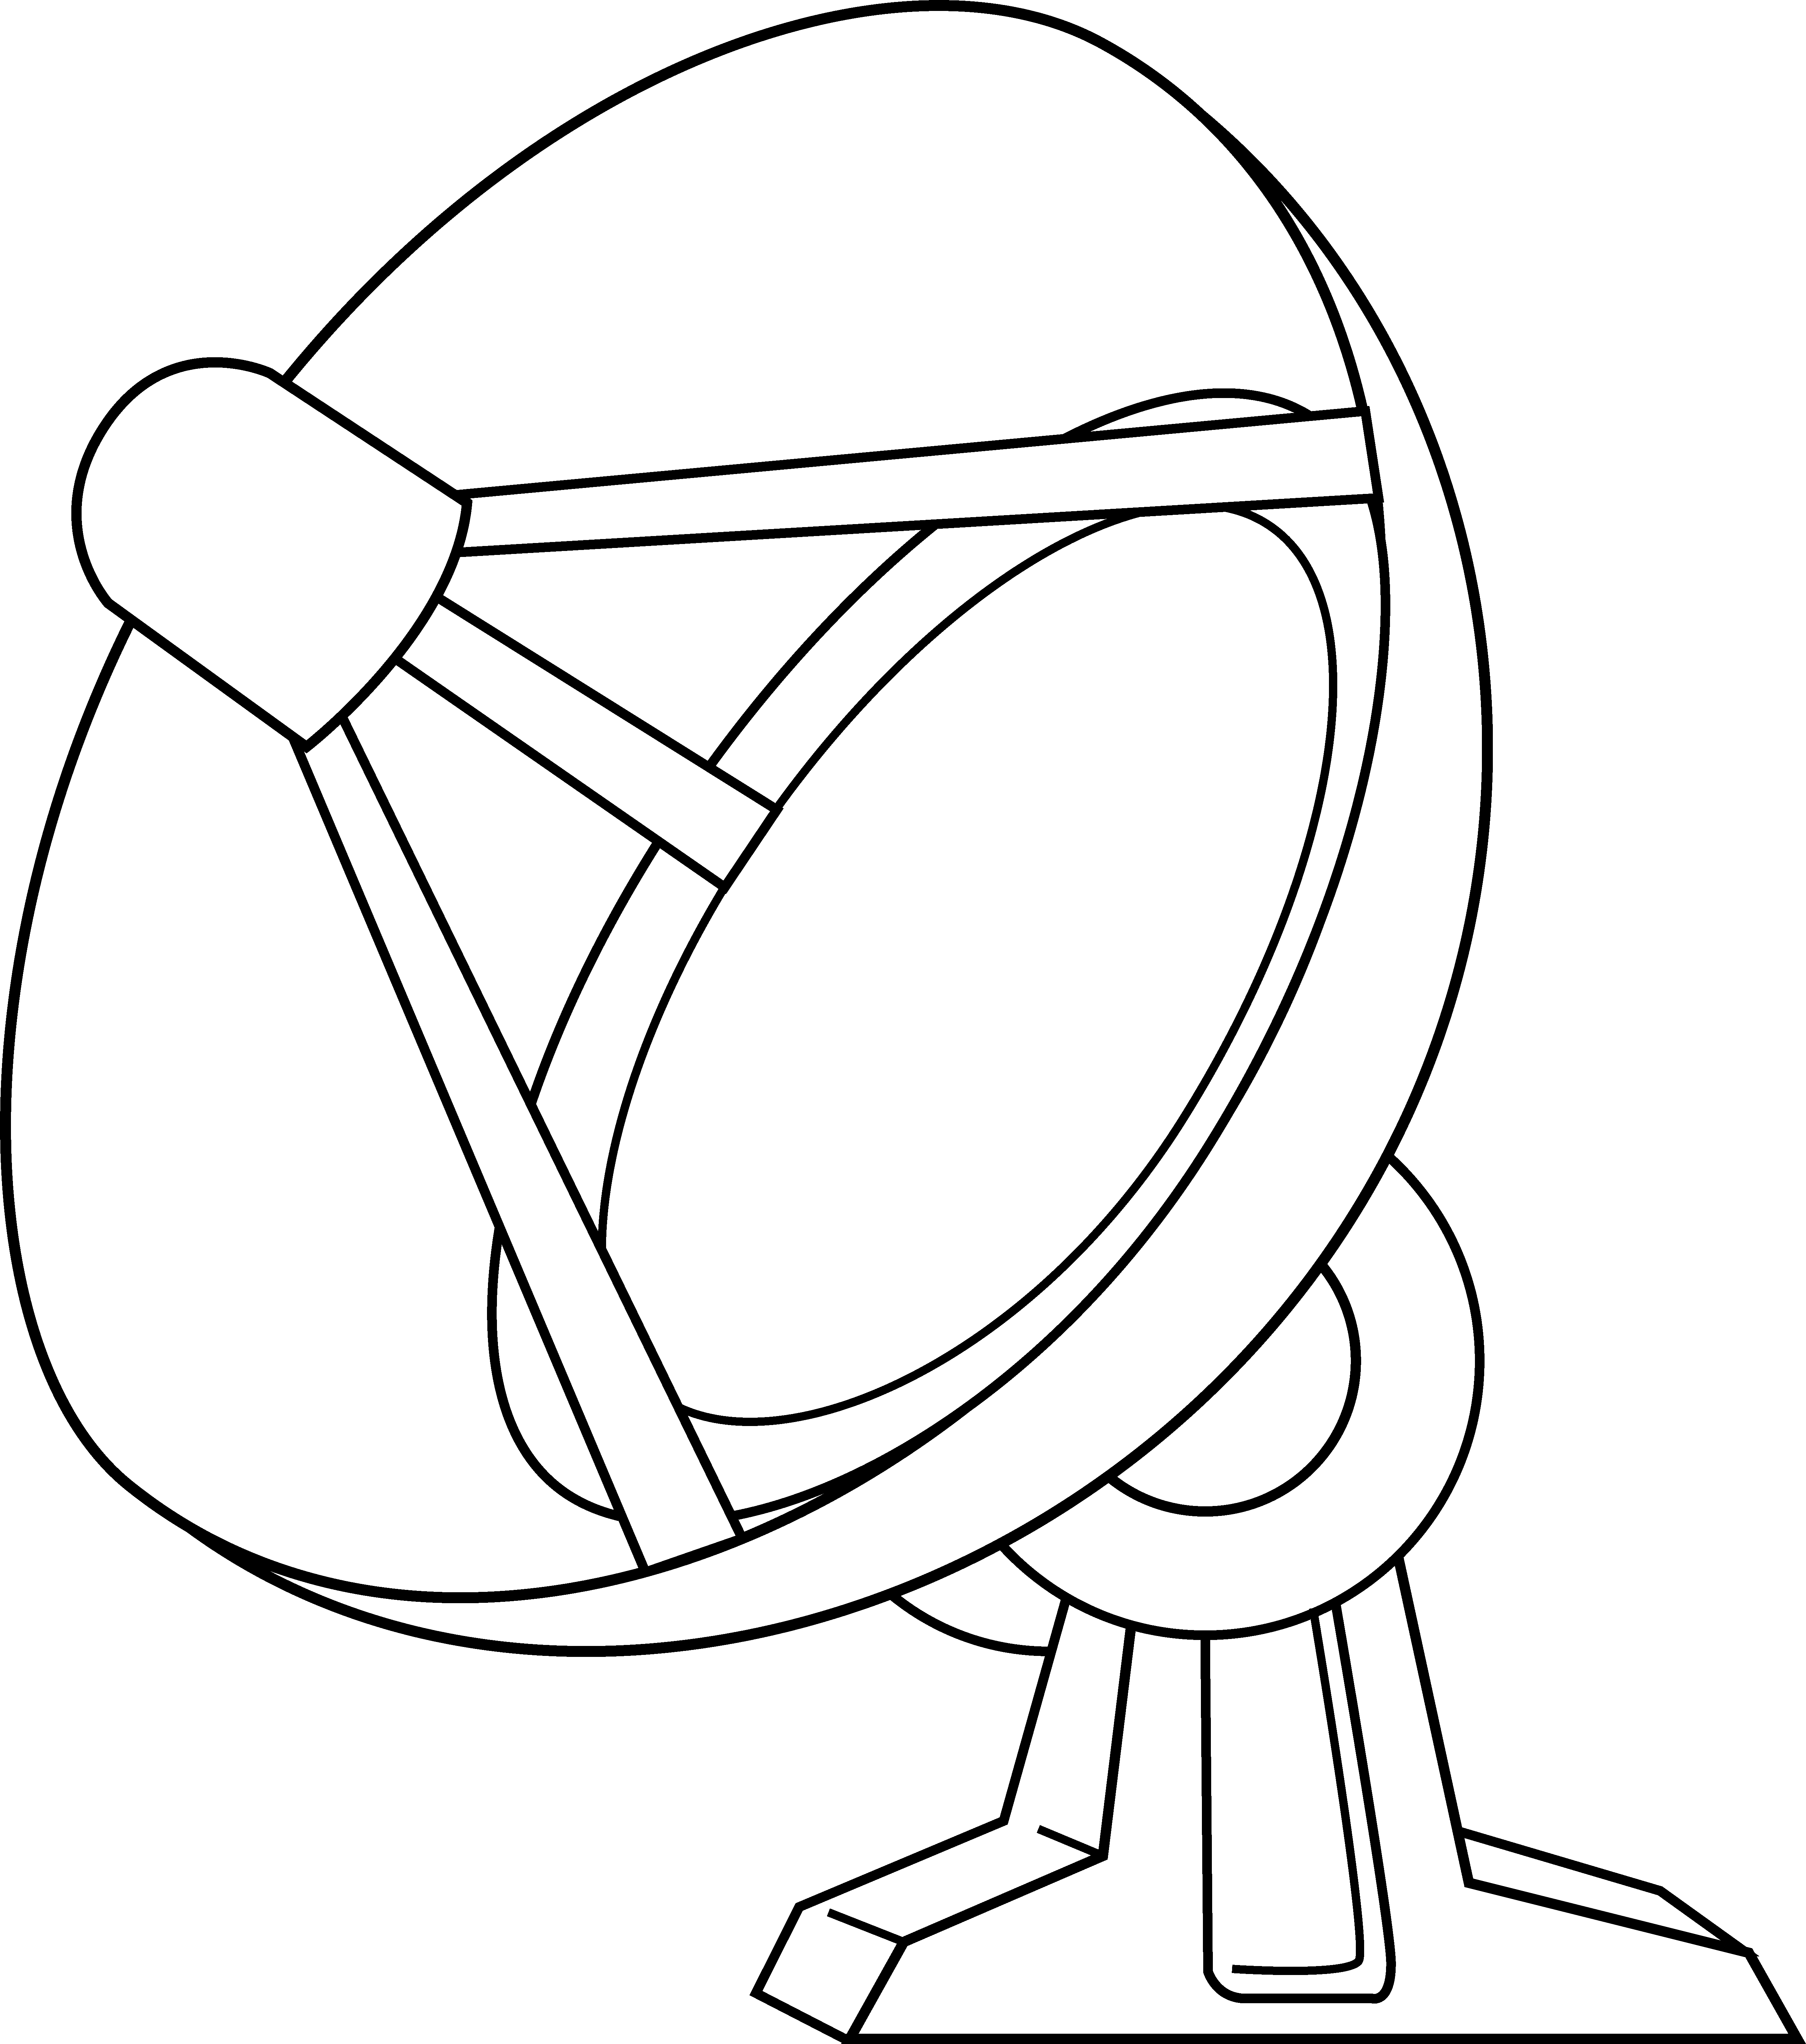 Free Satellite Clipart Black And White, Download Free Clip.